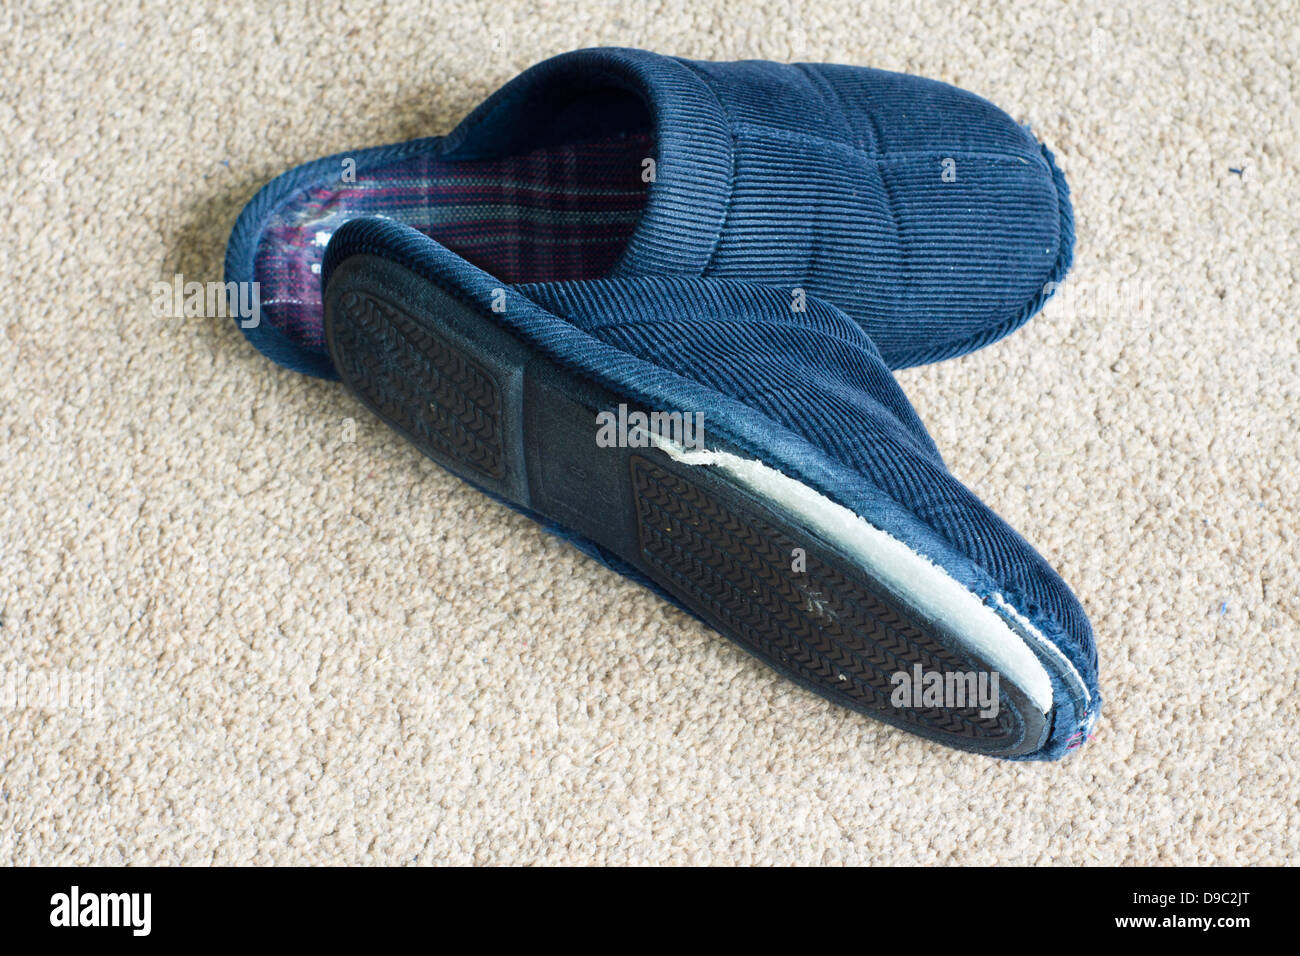 A pair of old work out slippers. - Stock Image